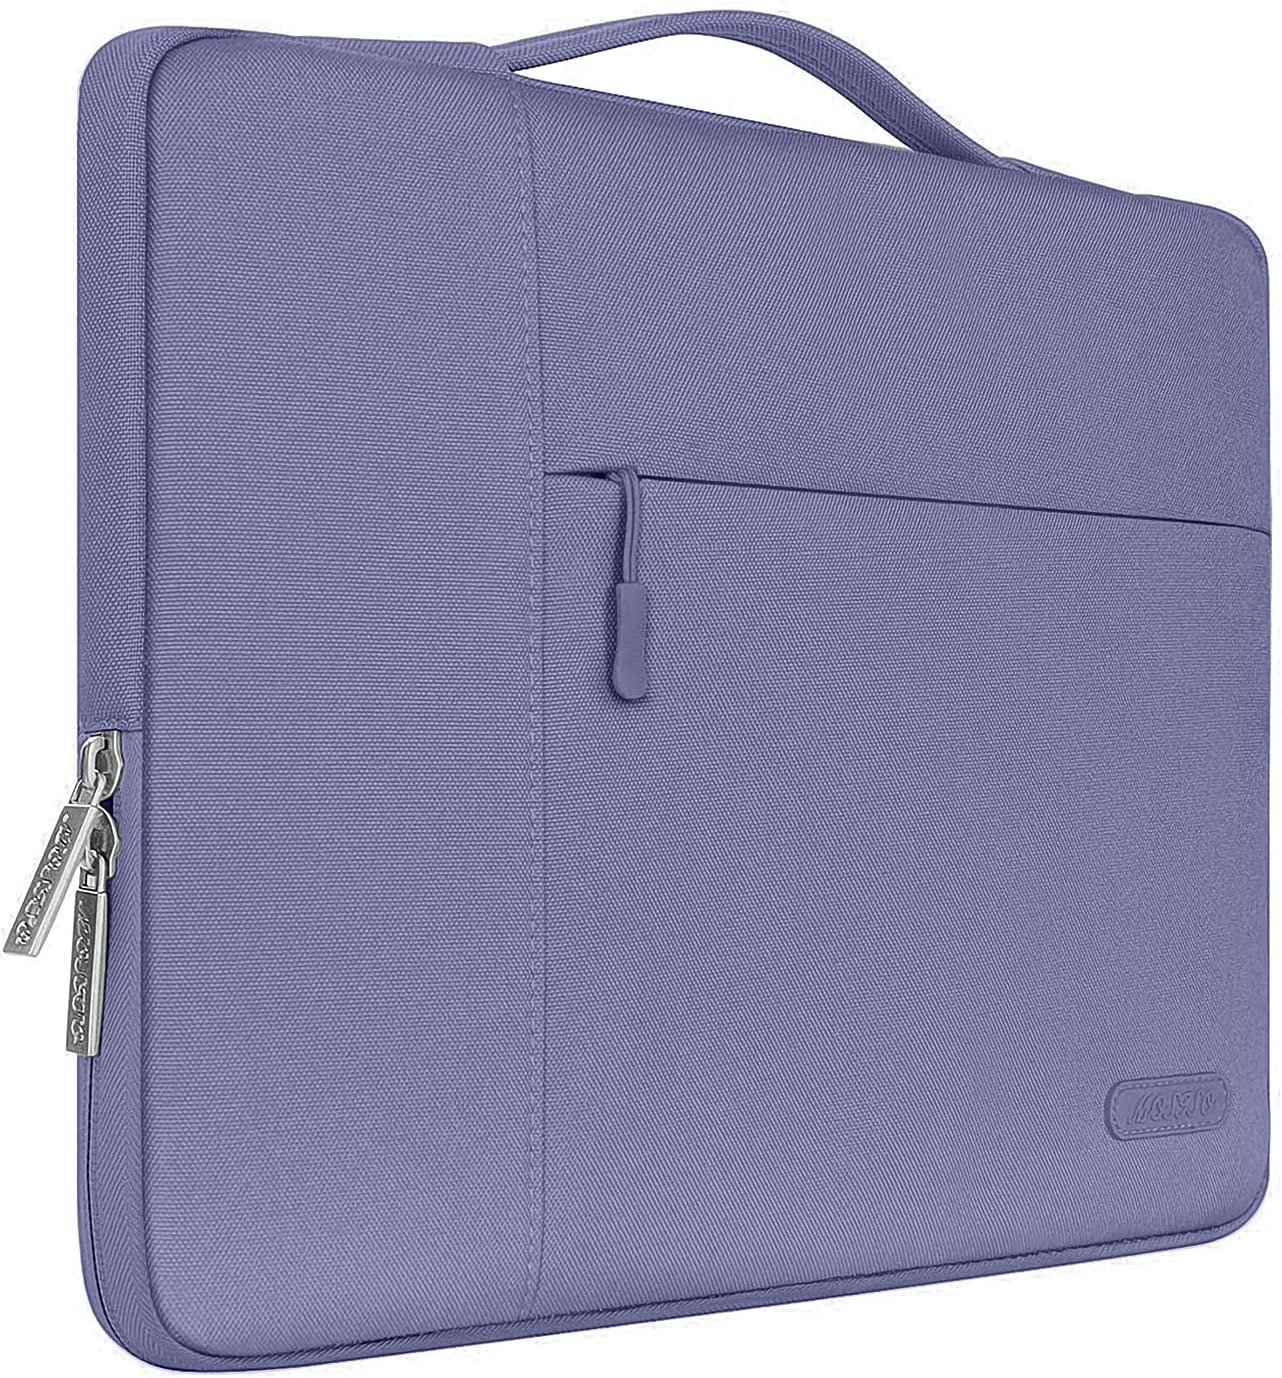 MOSISO Laptop Sleeve Compatible with 13-13.3 inch MacBook Air, MacBook Pro, Notebook Computer, Polyester Multifunctional Briefcase Bag, Lavender Gray